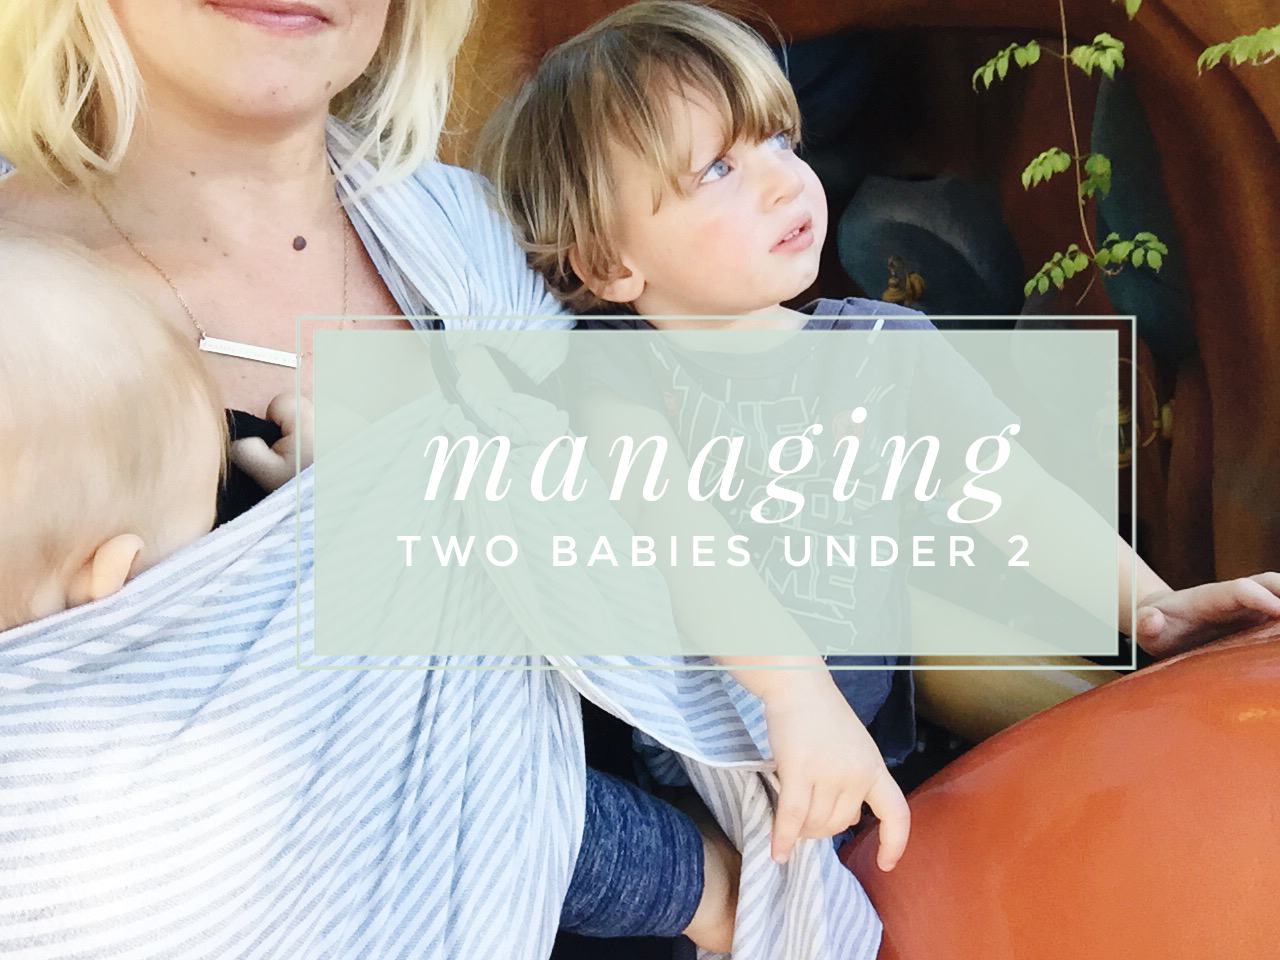 How To Breastfeed A Baby While Managing A Toddler + More Tips for